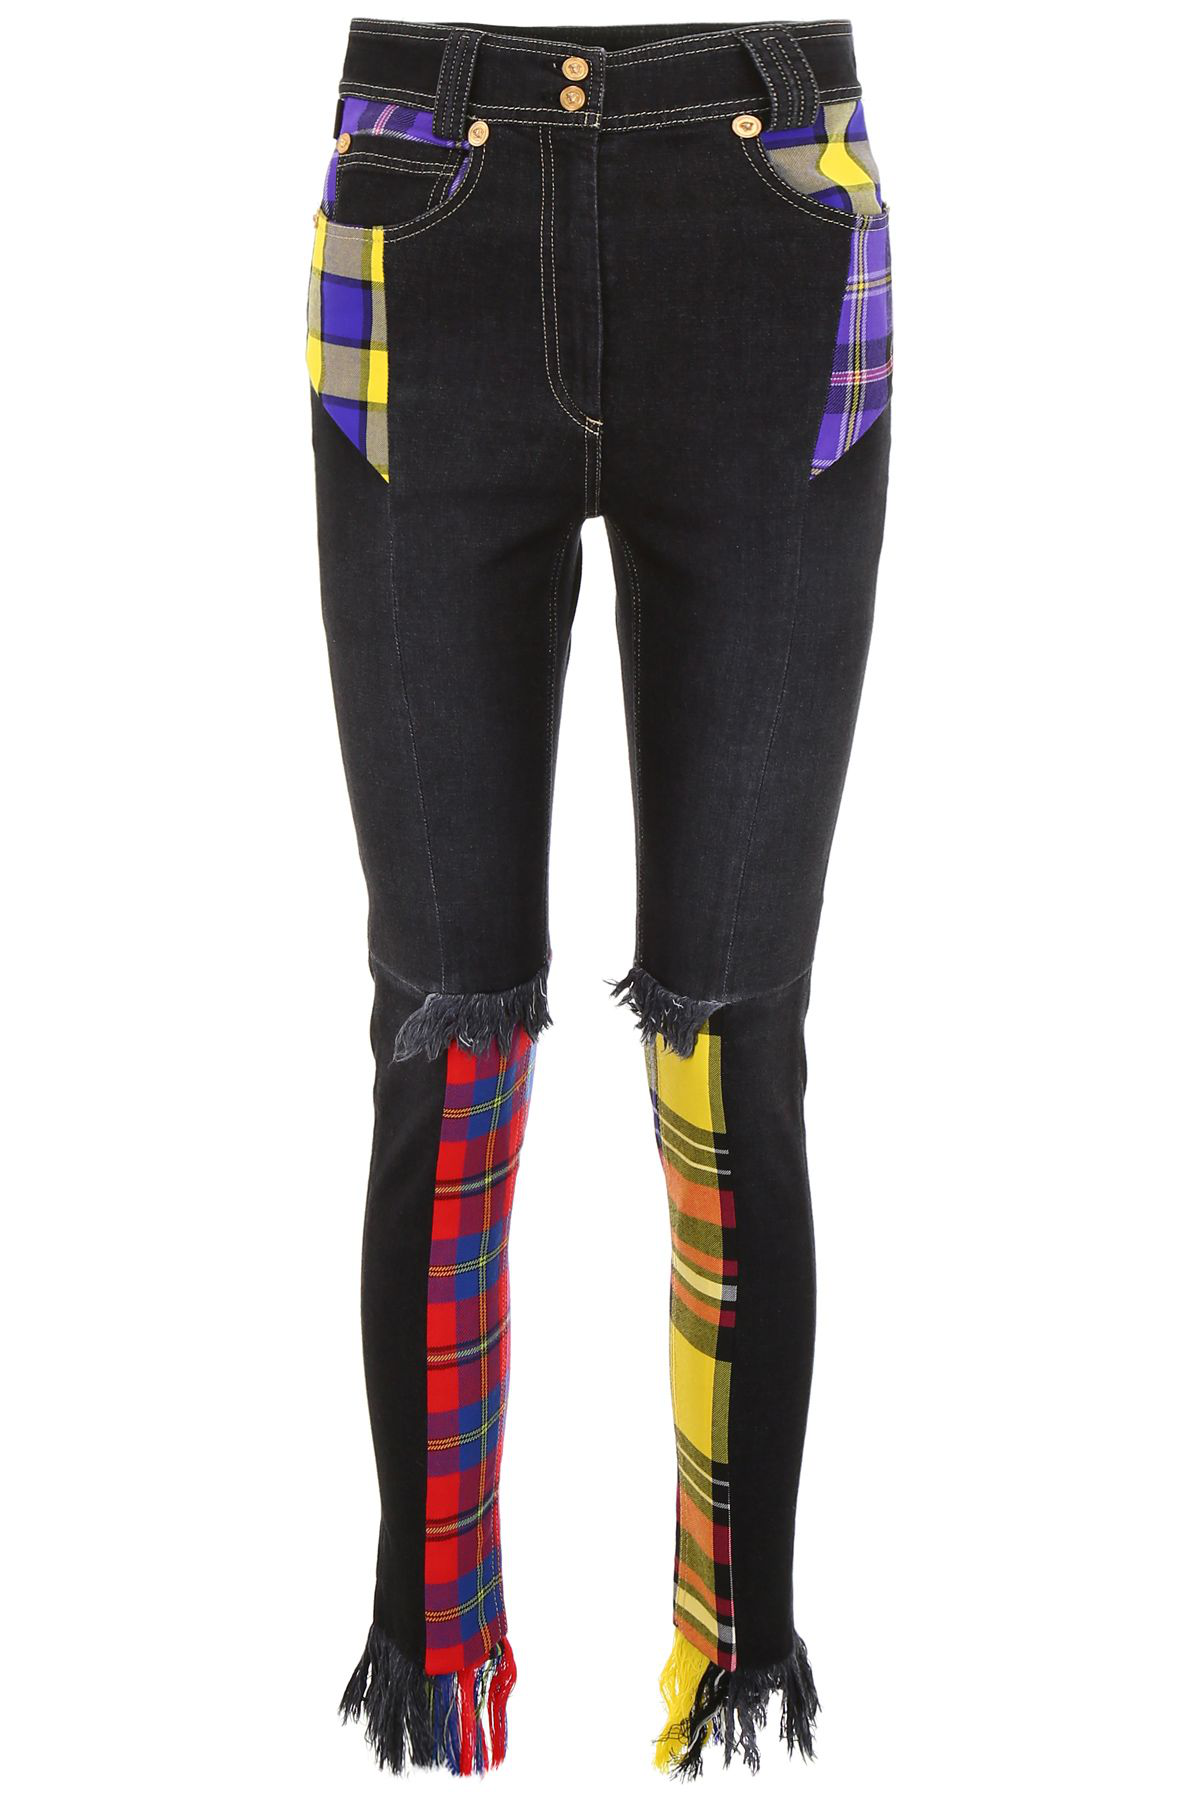 VERSACE JEANS WITH TARTAN INSERTS,10719548